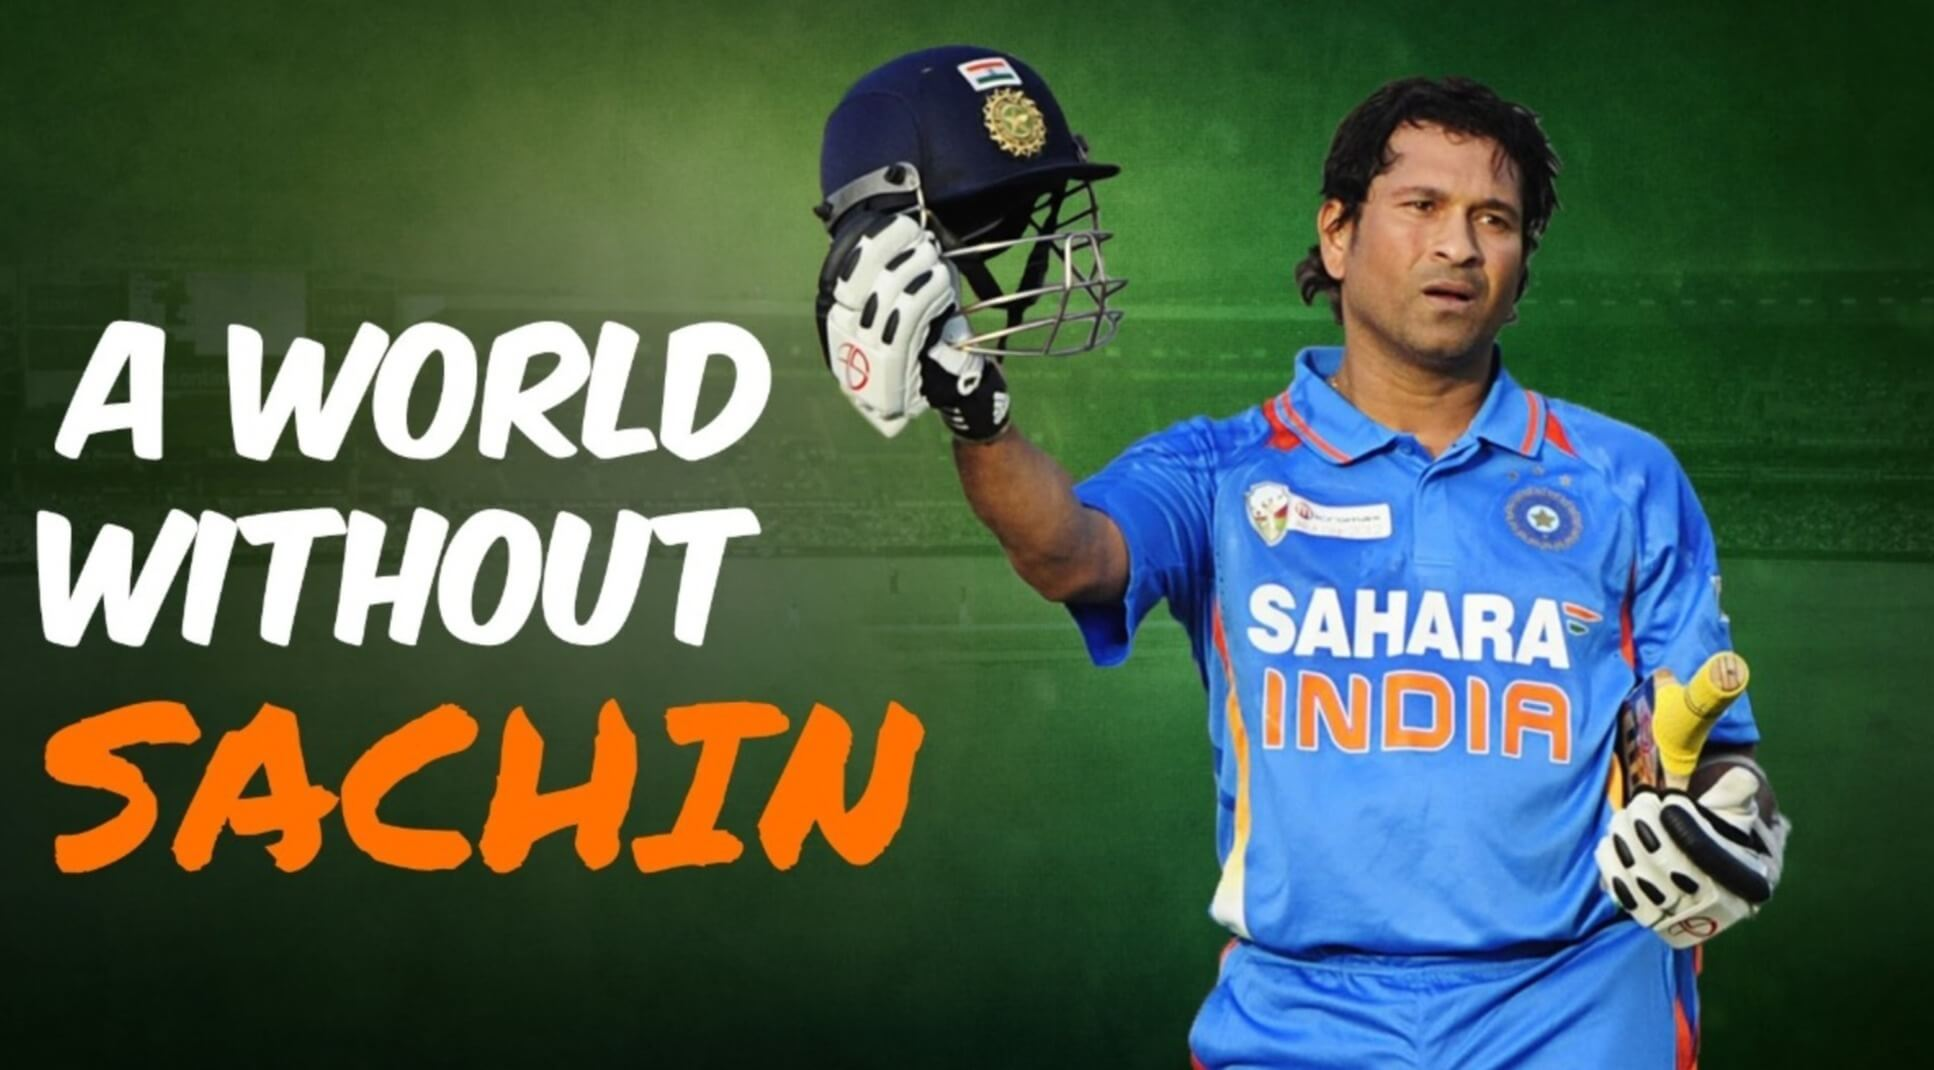 Reflections on the year without Tendulkar in the field